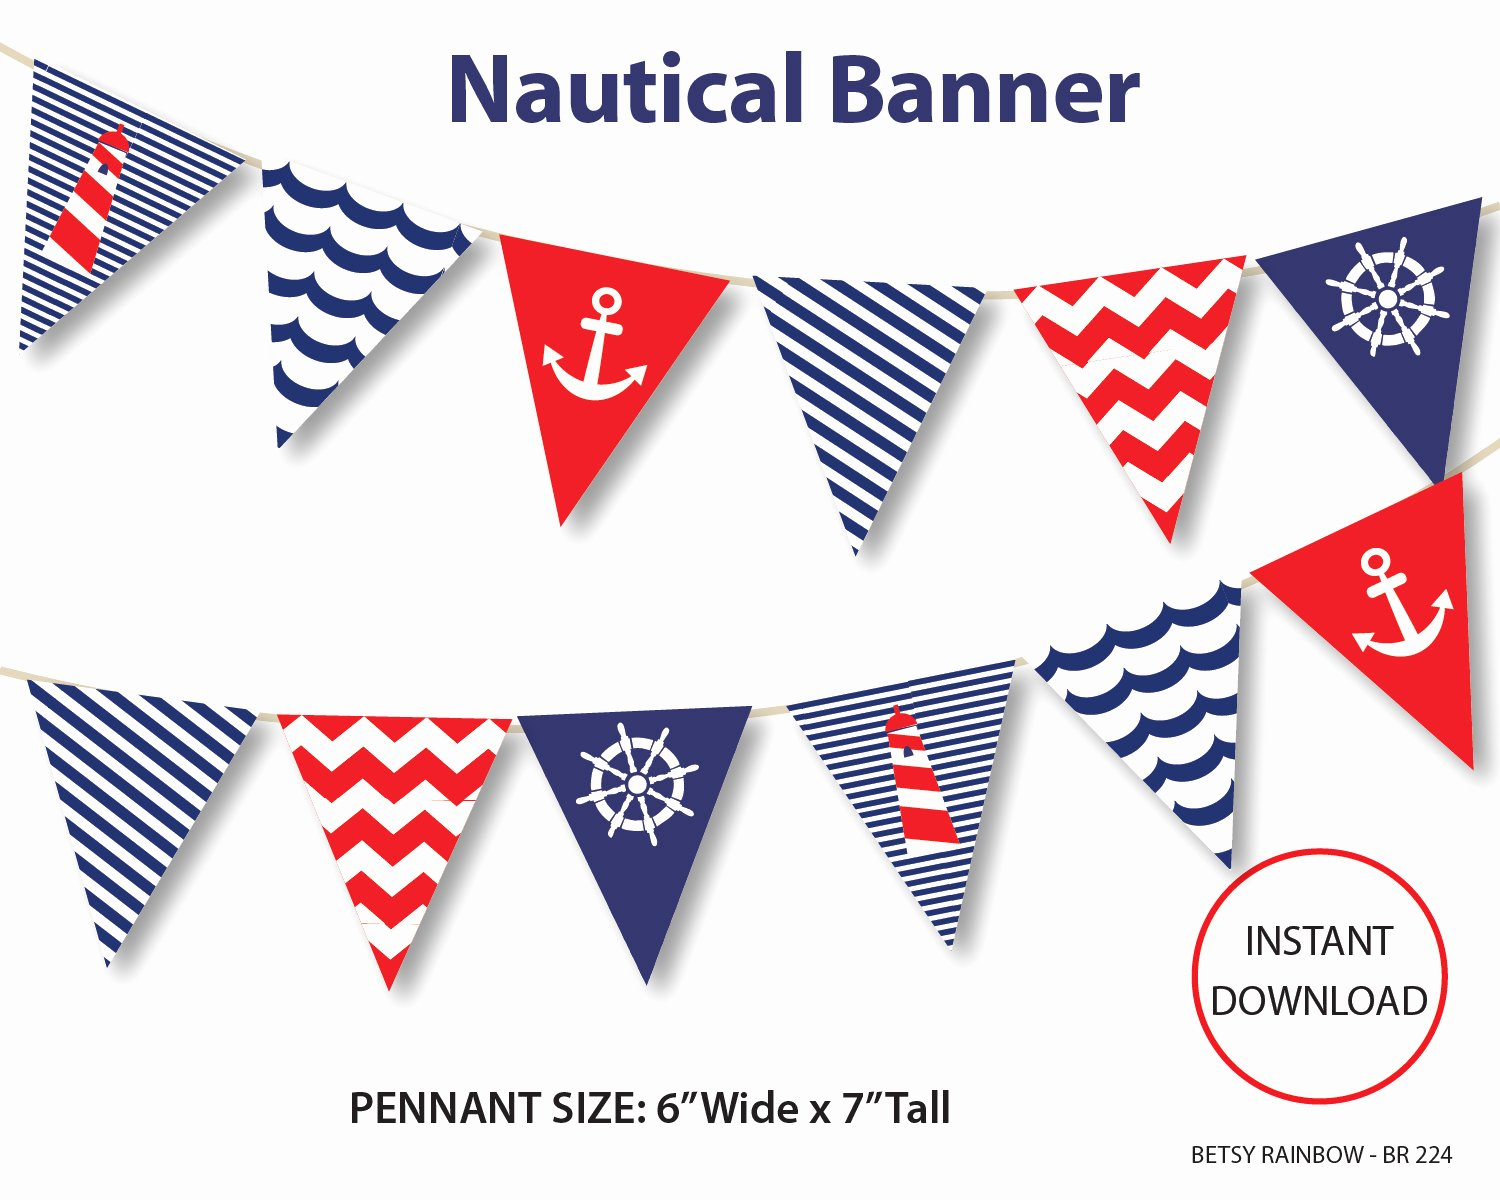 Diy Baby Shower Banner Template Beautiful Nautical Banner Printable Banner Nautical Diy Party Navy